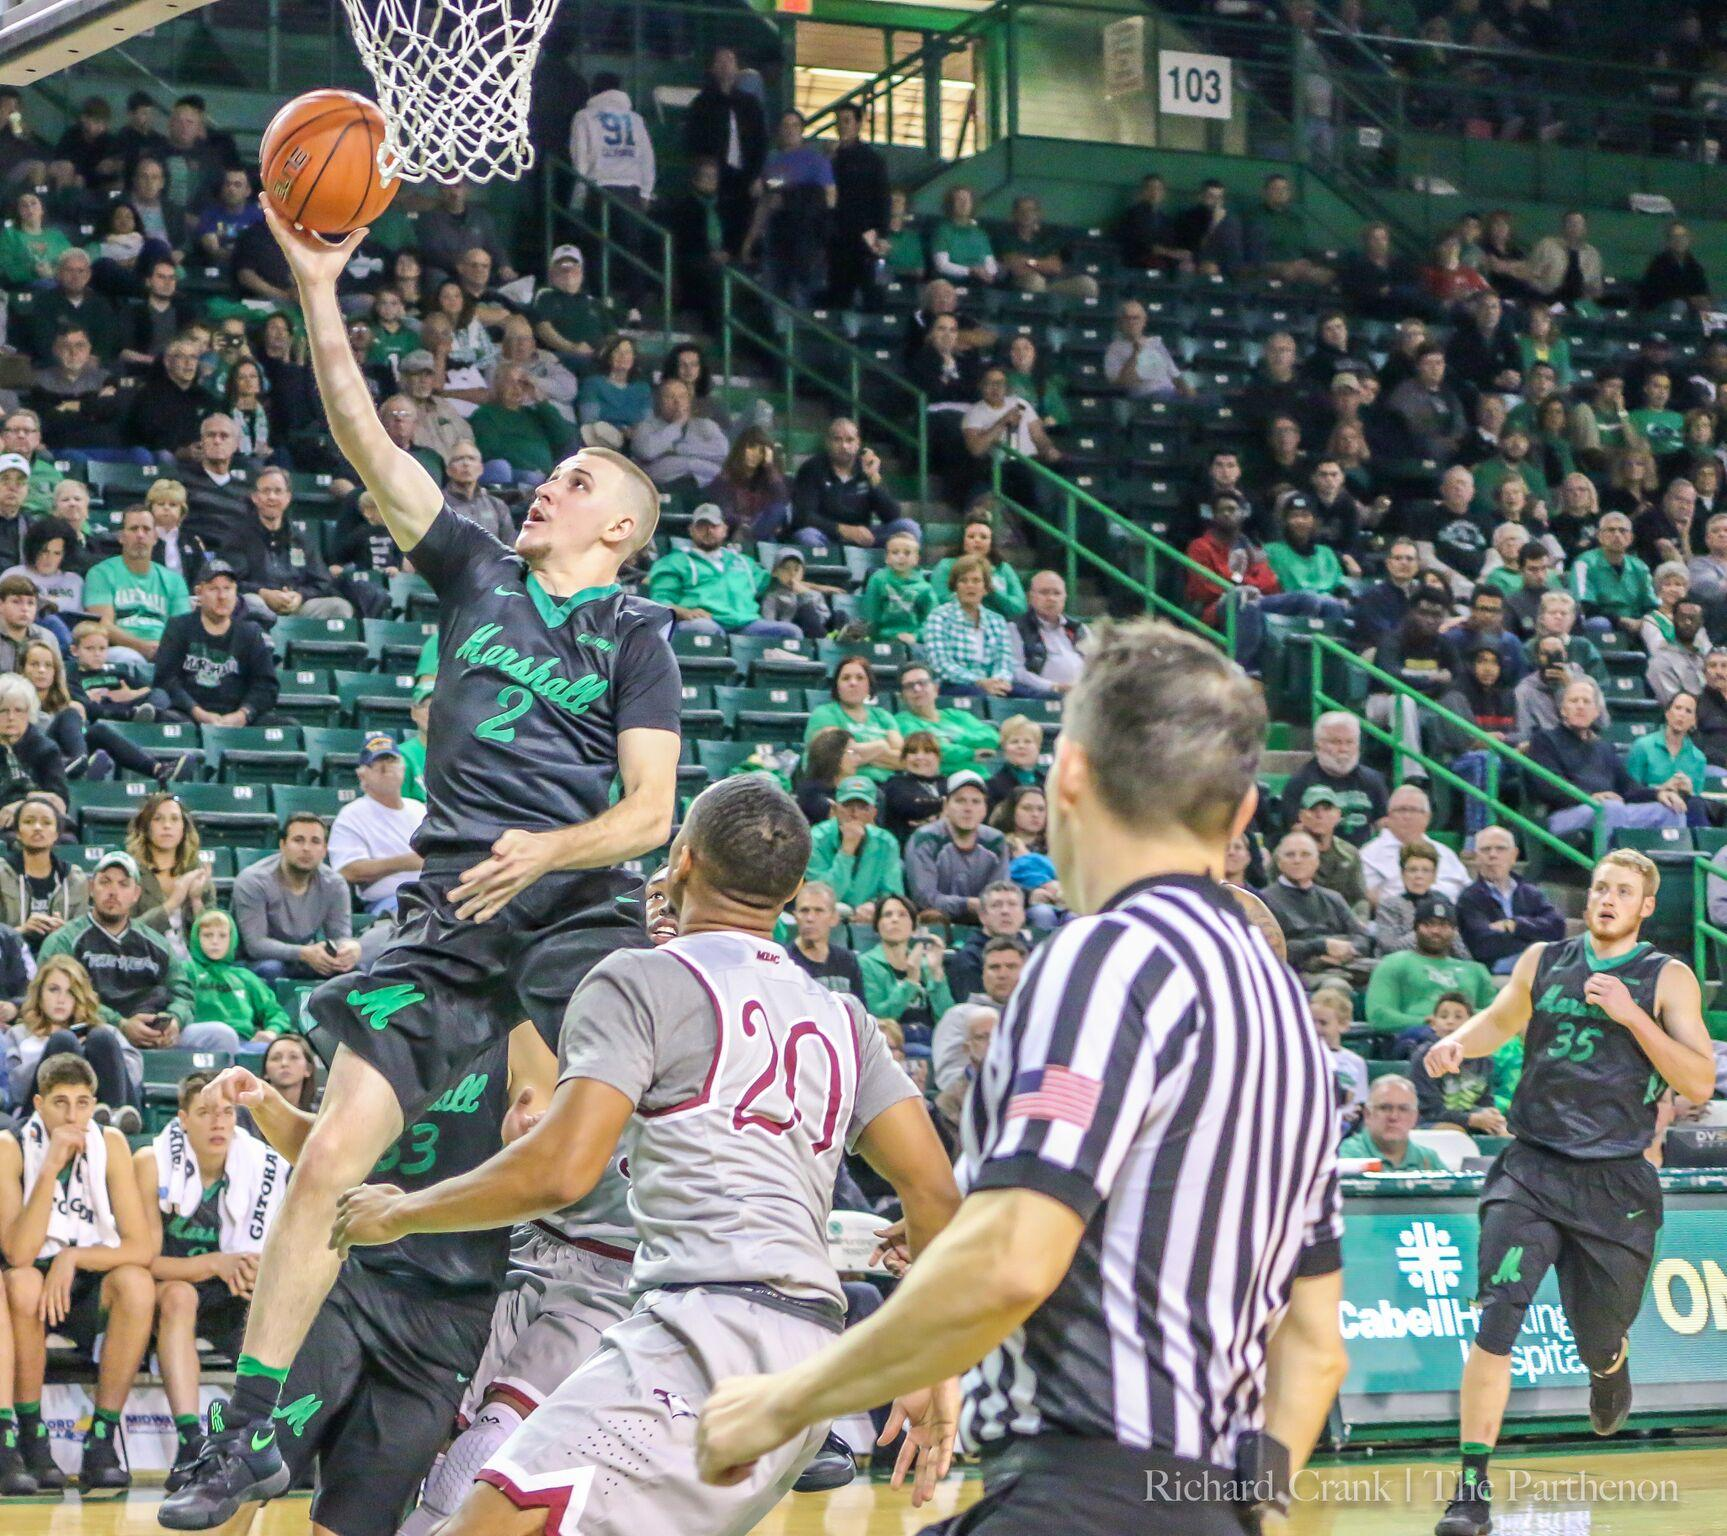 Marshall senior guard Stevie Browning drives in a game against North Carolina Central. Browning set a new career high in points against Morehead State, recording 32.